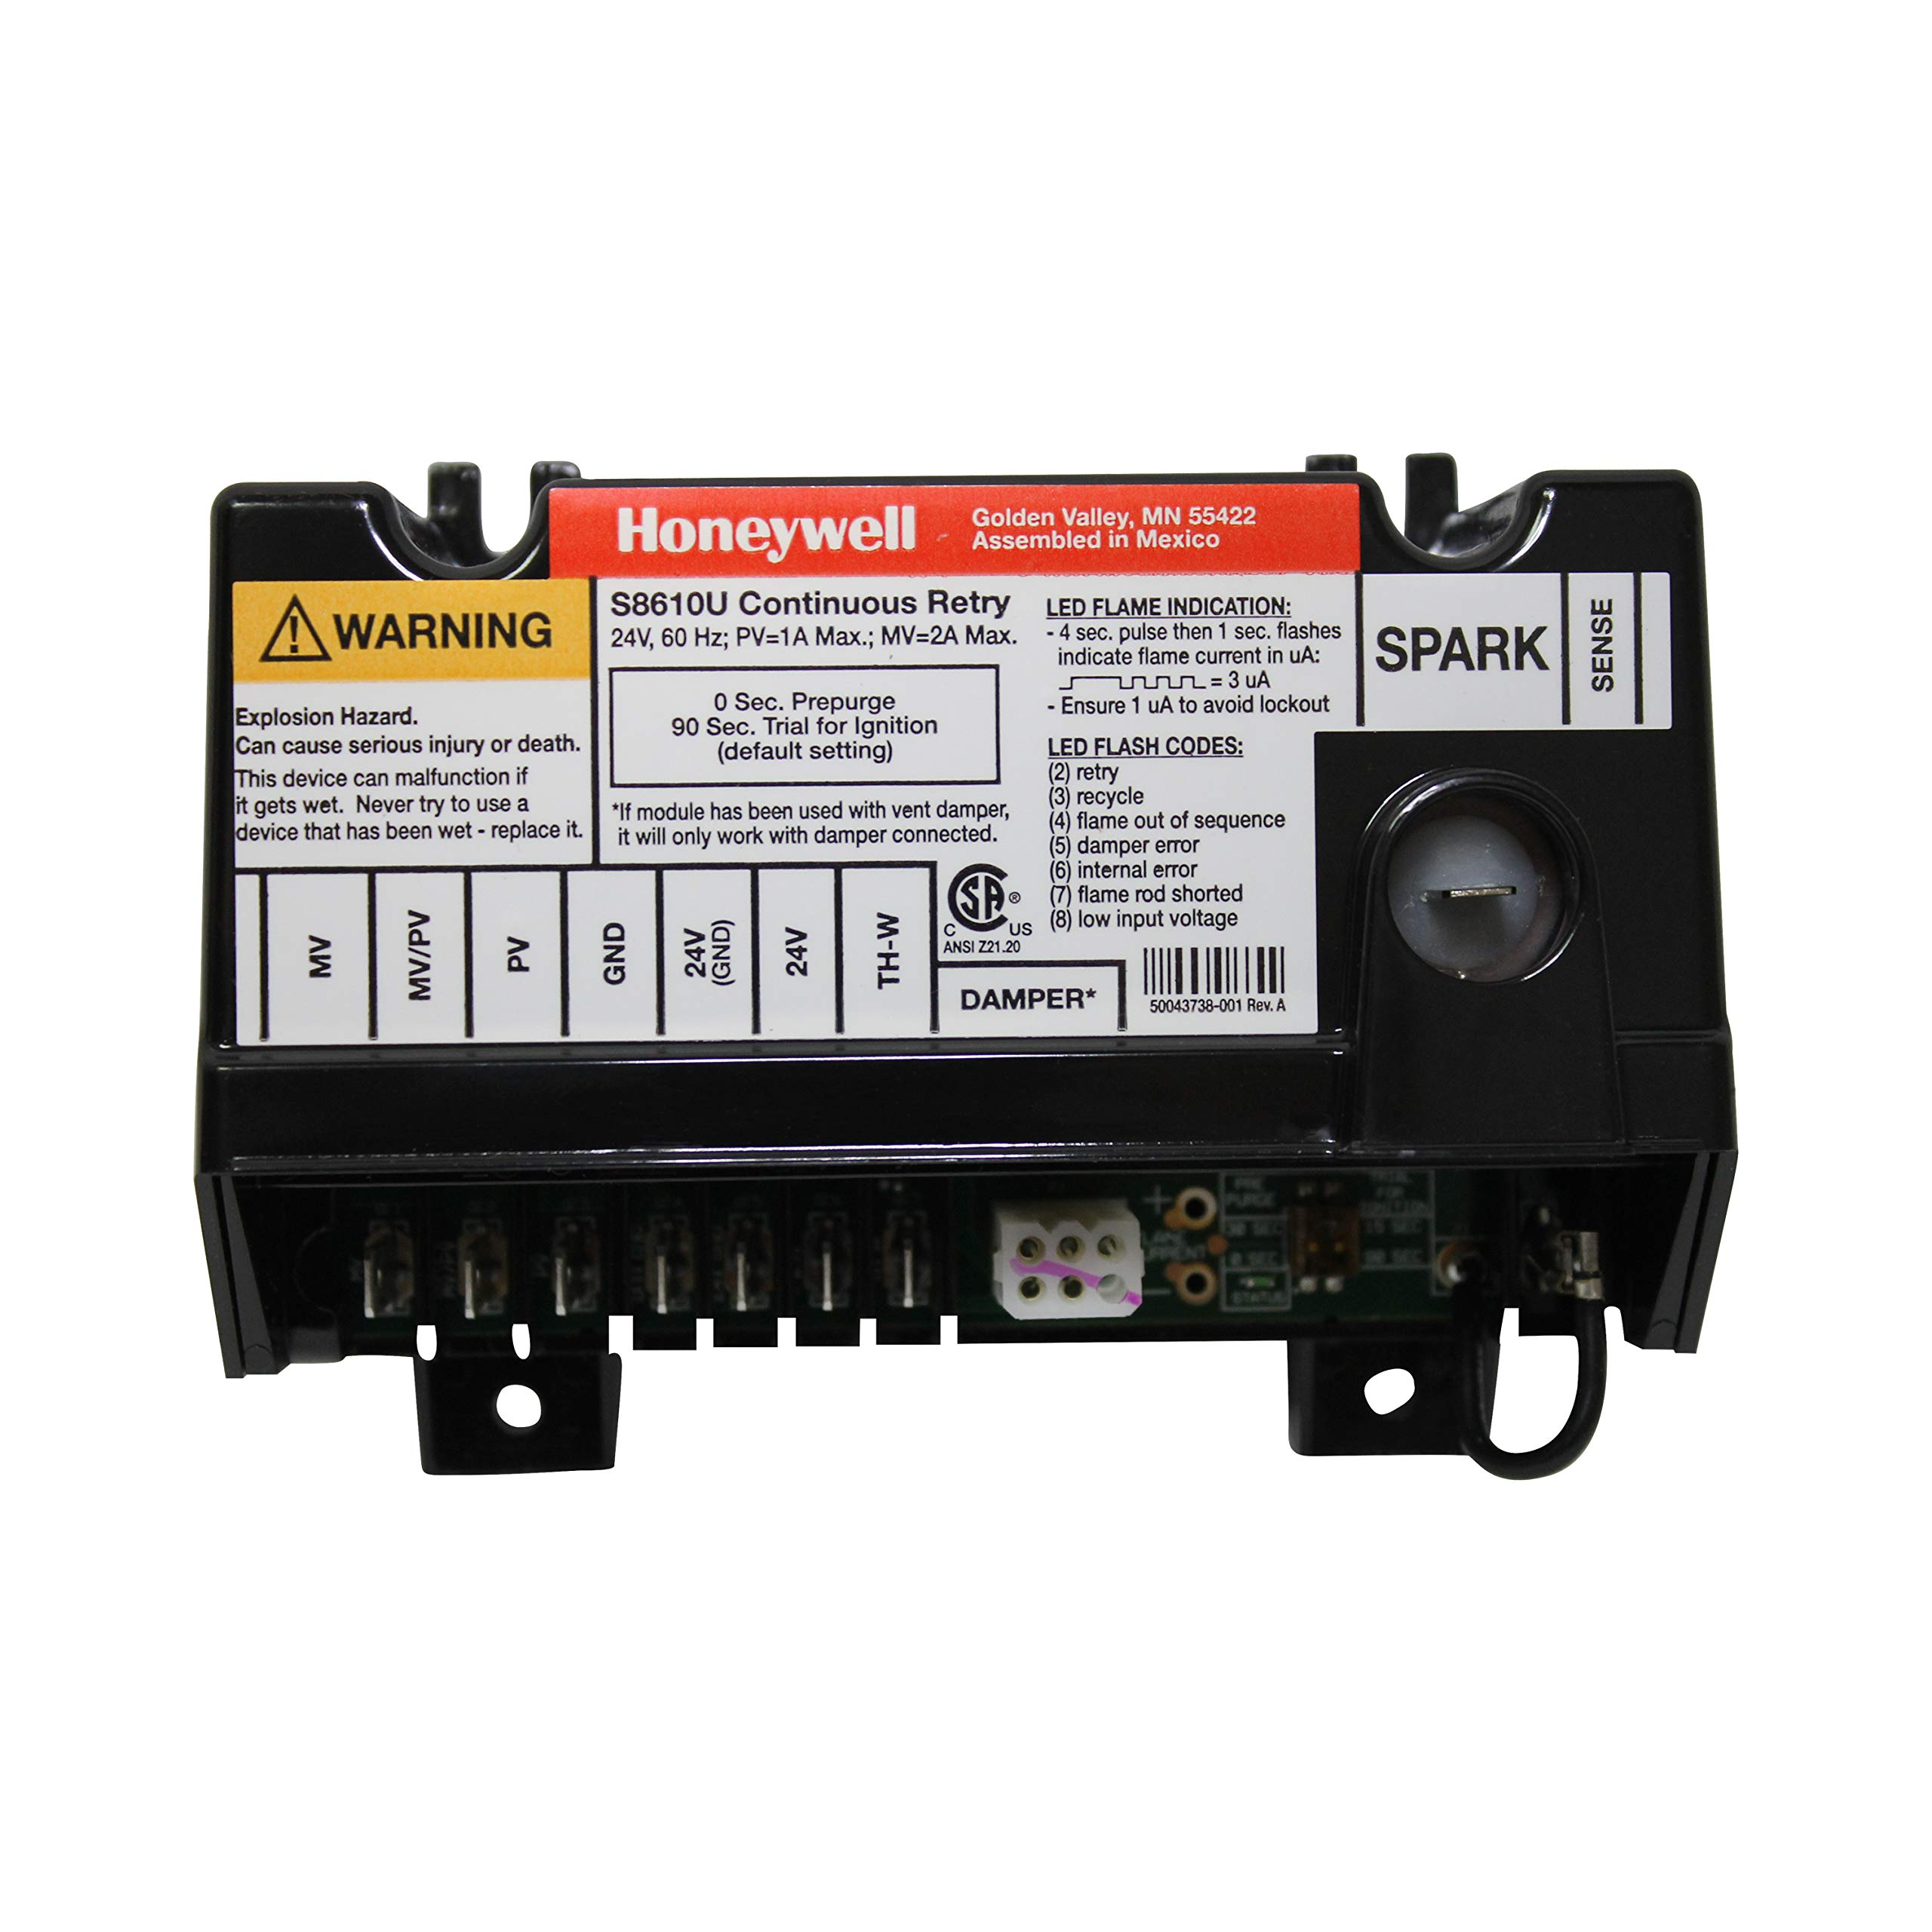 honeywell s8610u3009 furnace intermittent pilot controlhoneywell s8610u3009 furnace intermittent pilot control replacement household furnace ignitors amazon com